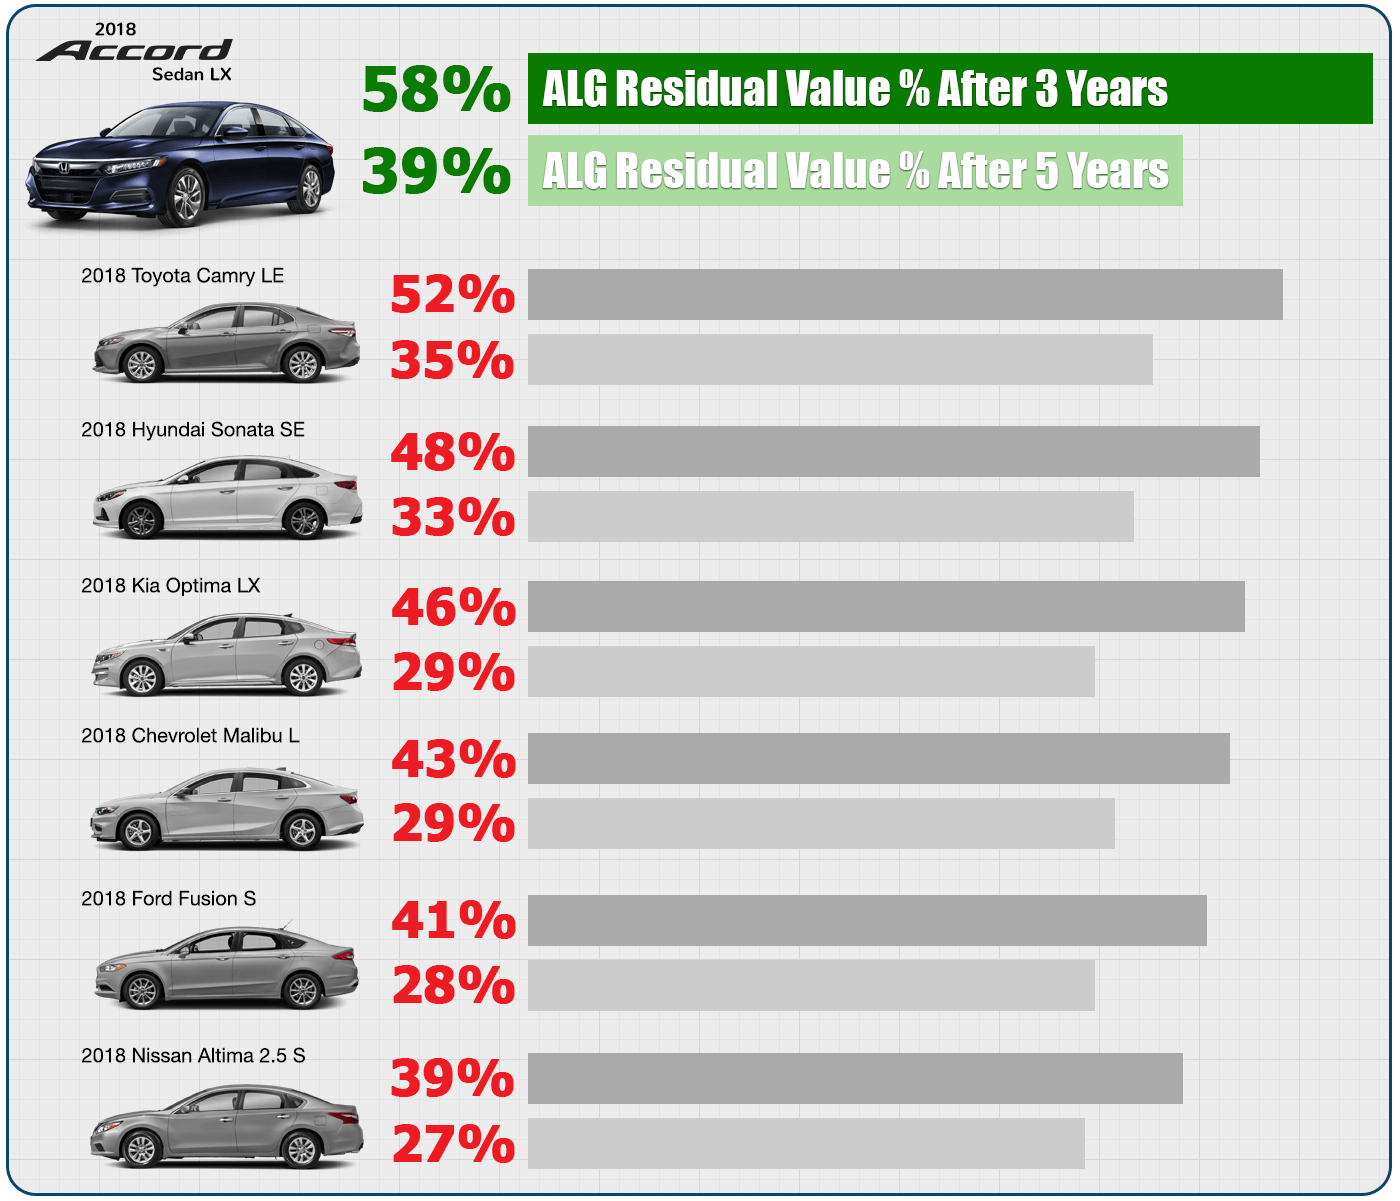 April 2018 ALG Residual Value Percentages